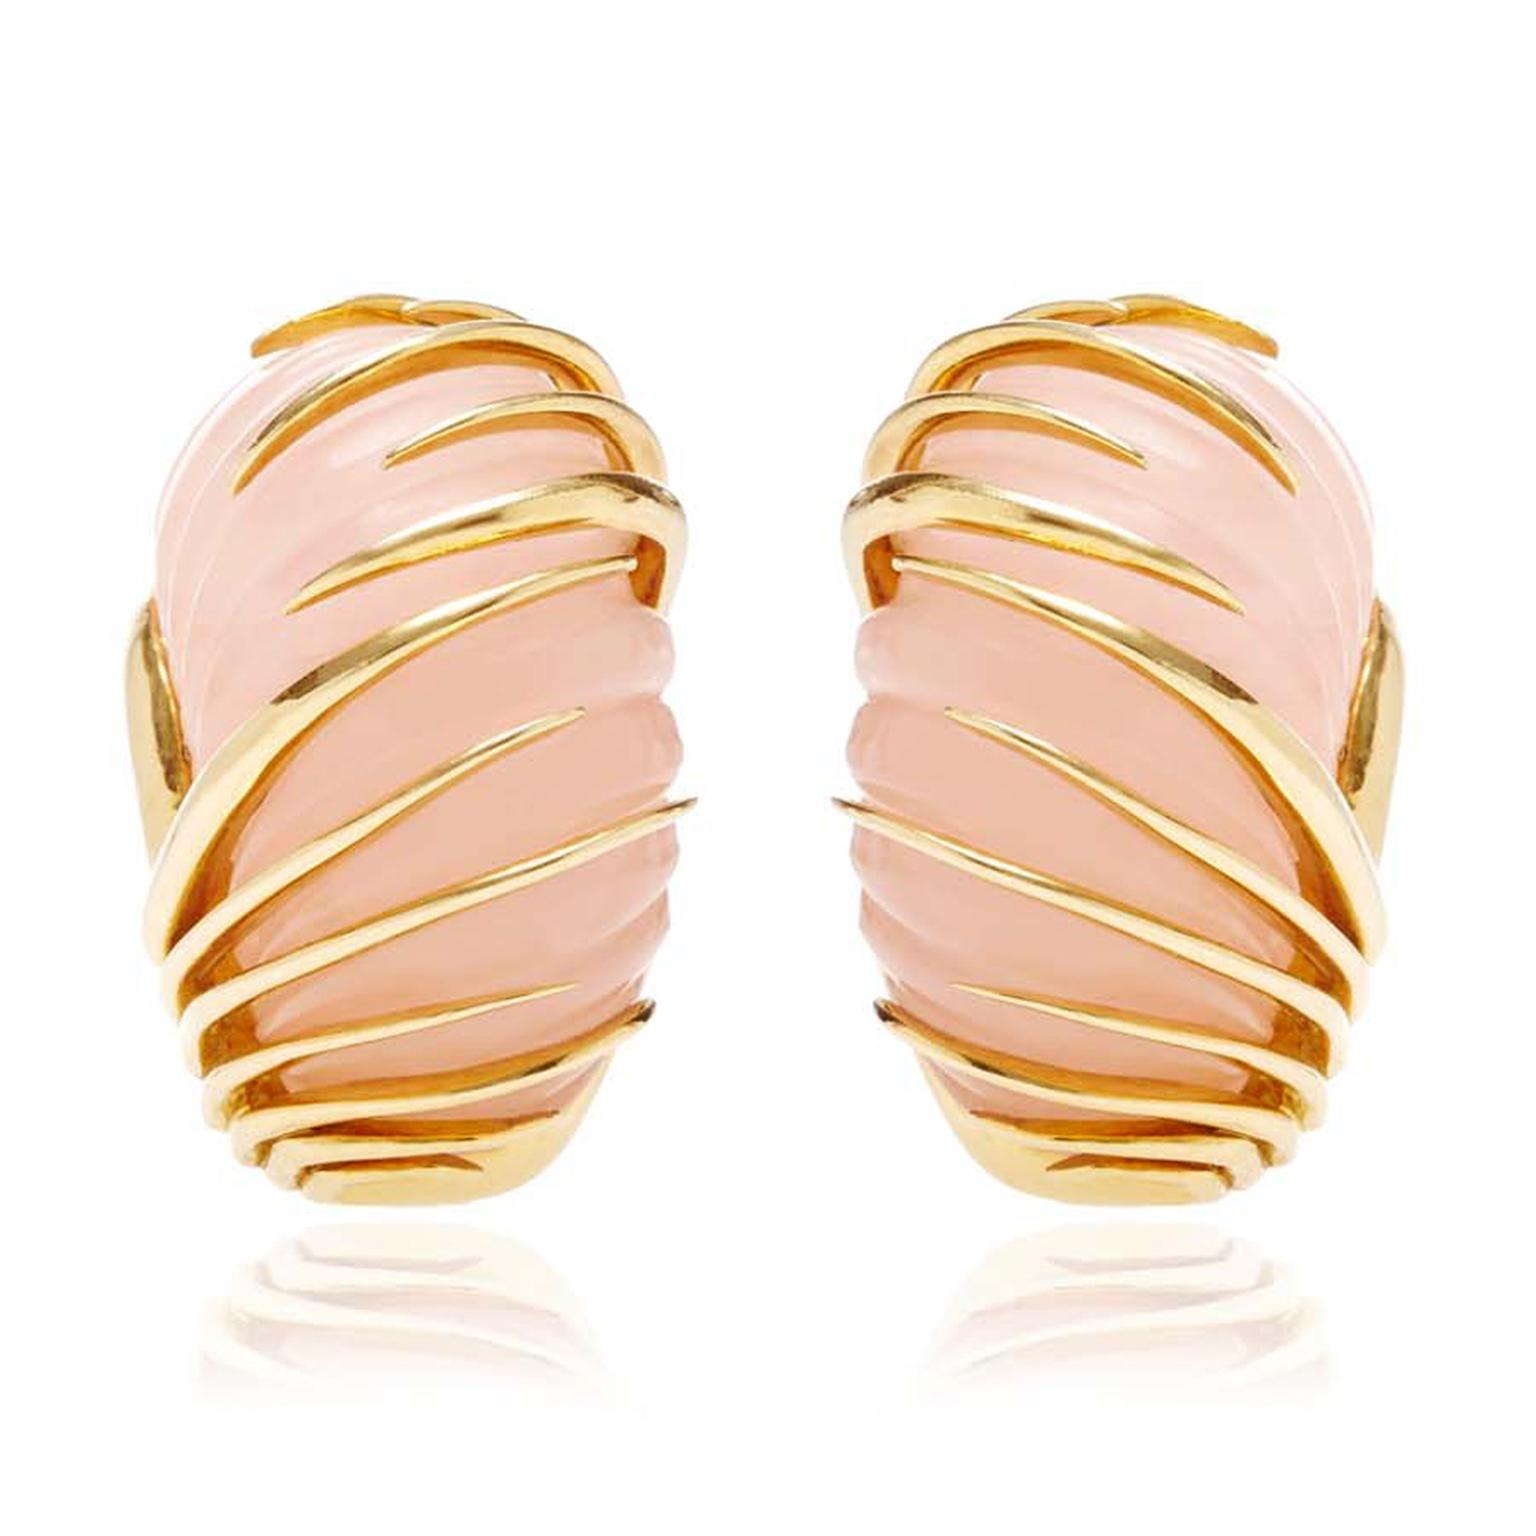 Simon Teakle for Moda Operandi vintage Van Cleef and Arpels earrings featuring a blush-pink of rose quartz with elegant gold tentacles wrapping themselves around the stones ($5,800).